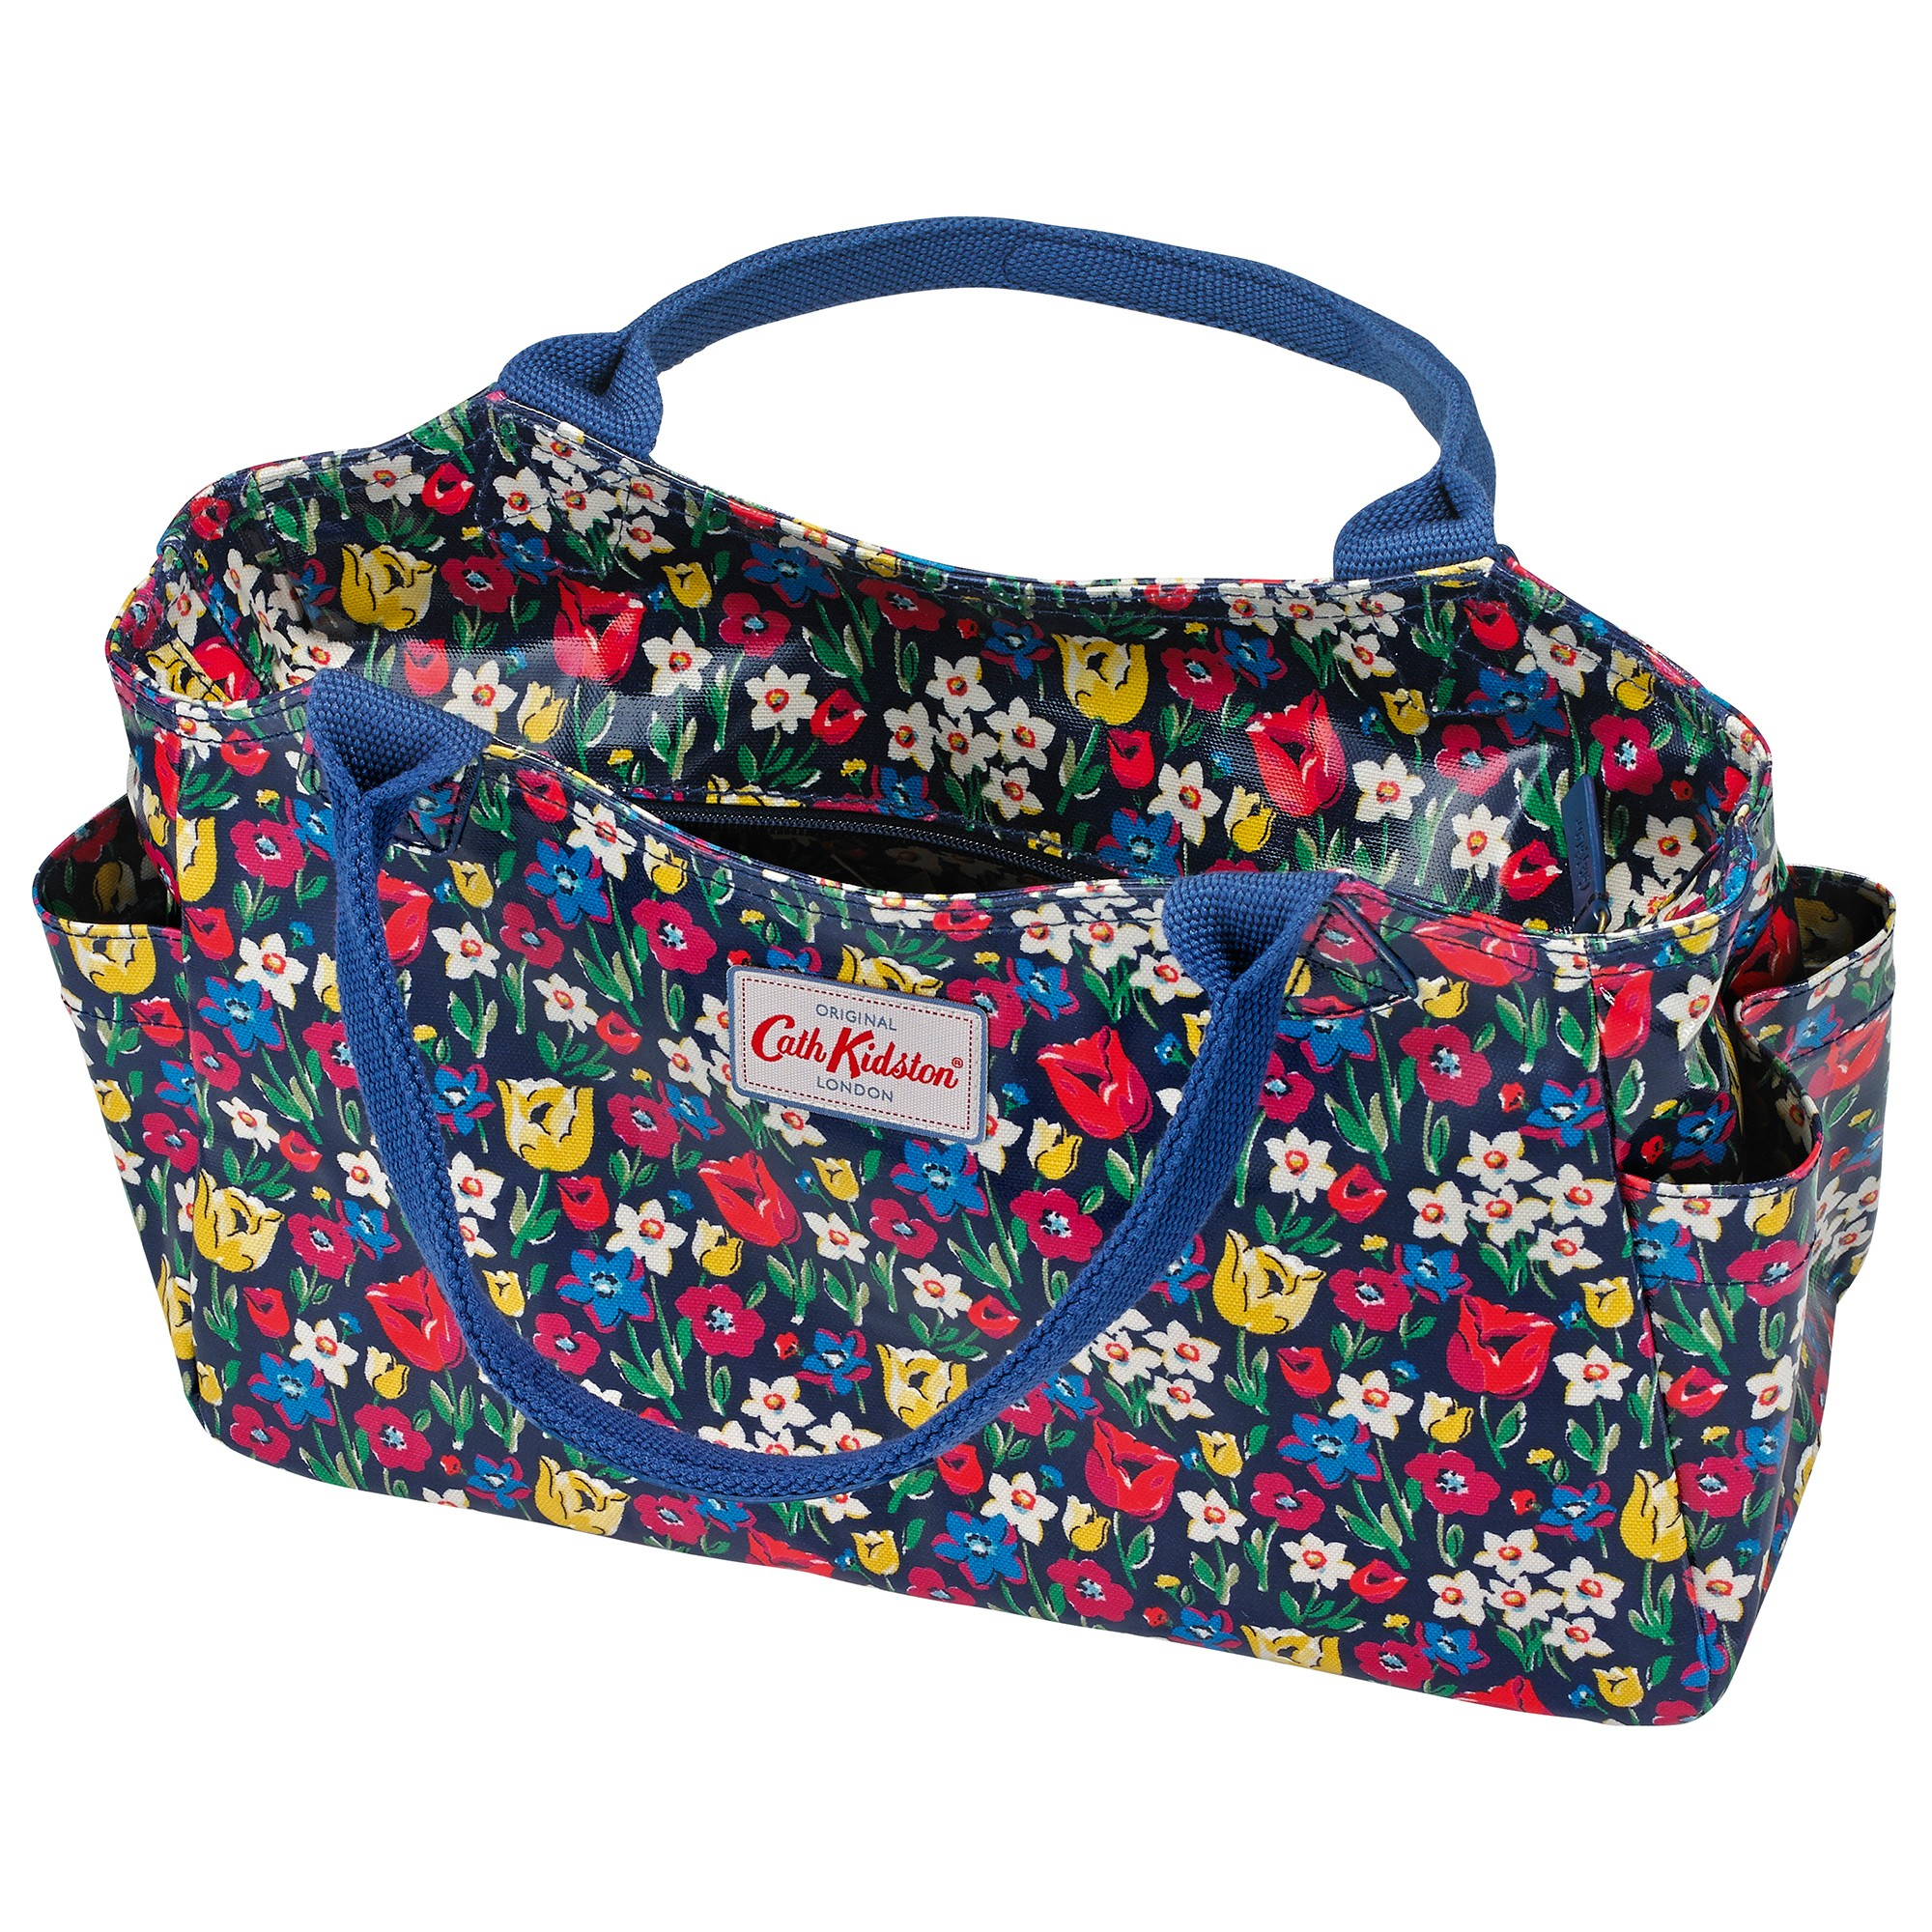 Lyst - Cath Kidston Foldaway Overnight Bag In Floral Print In Blue